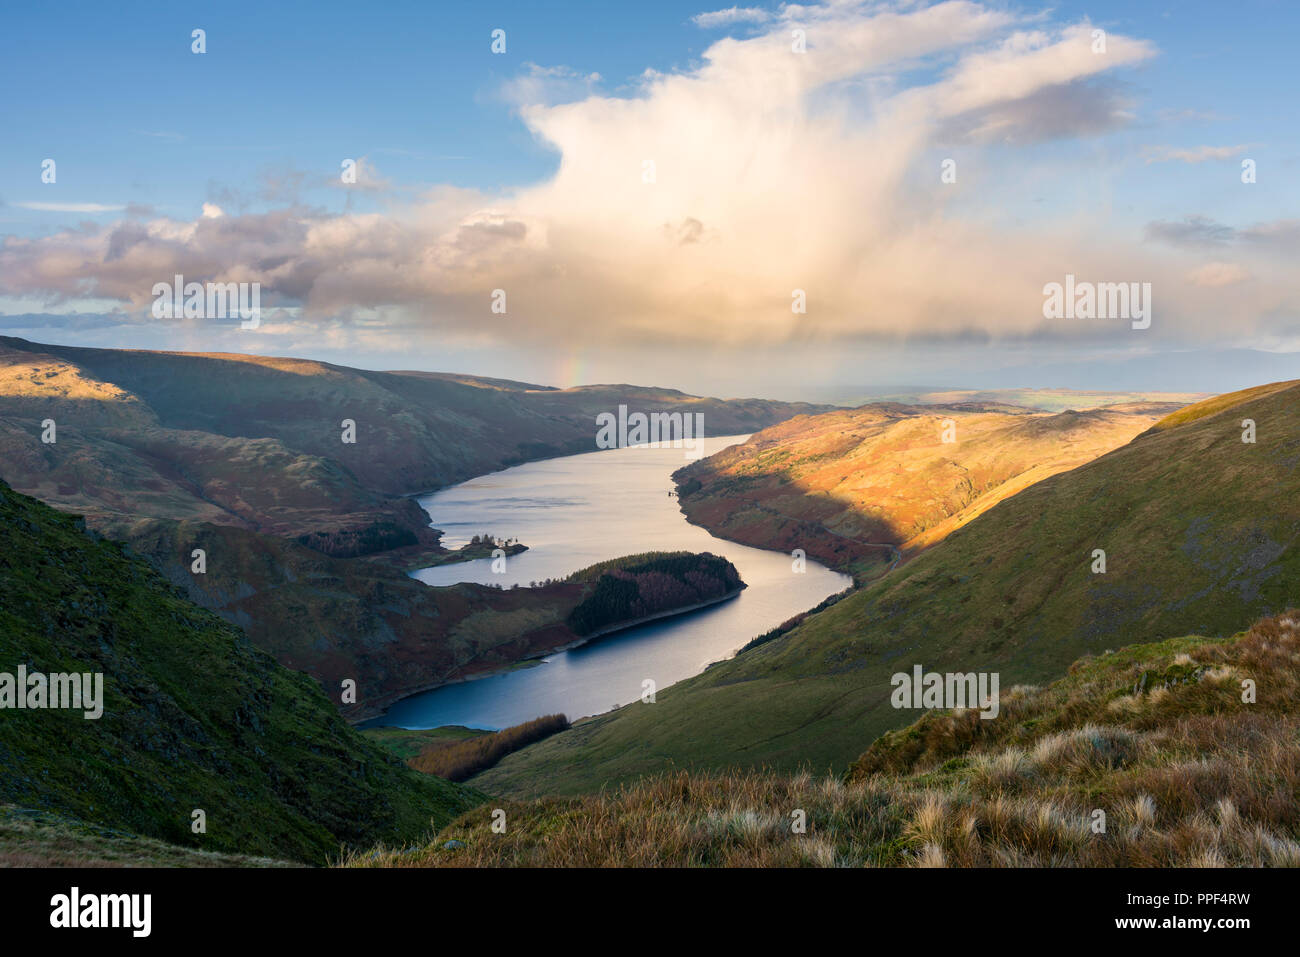 Haweswater Reservoir from Harter Fell in the Lake District National Park, Cumbria, England. - Stock Image